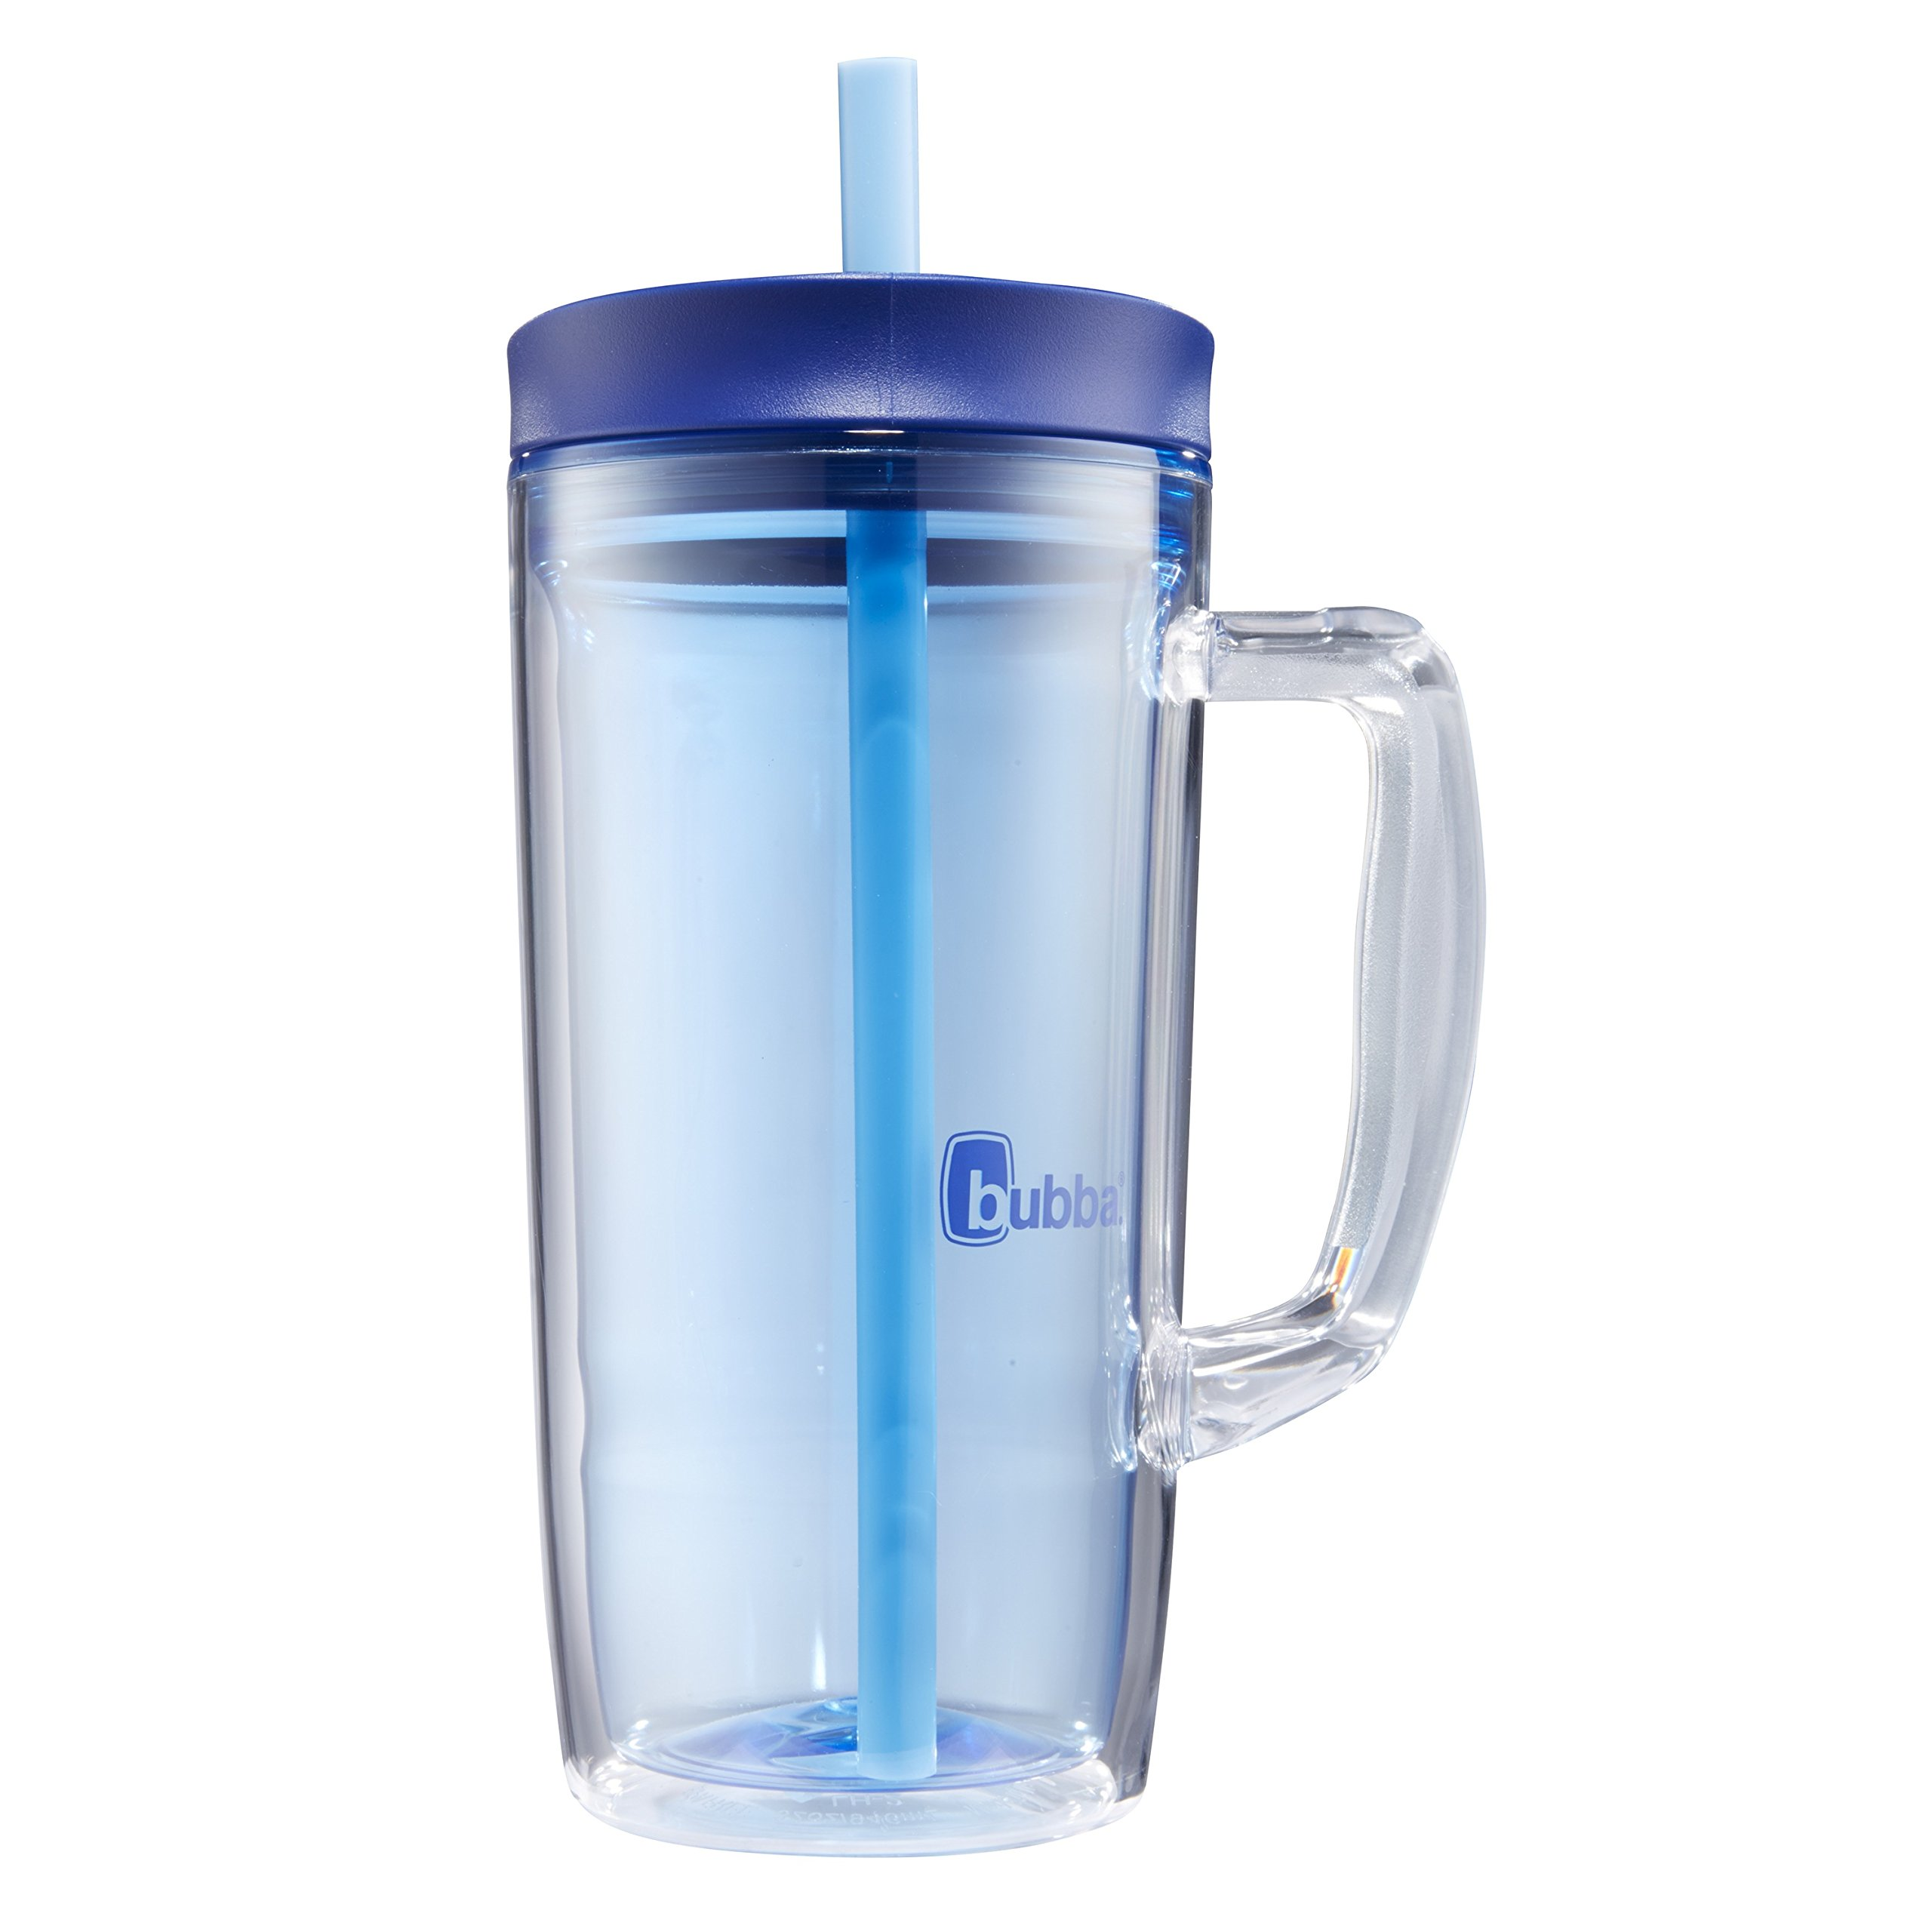 Bubba Envy Double Wall Insulated Straw Tumbler with Handle, 32 oz, Blue